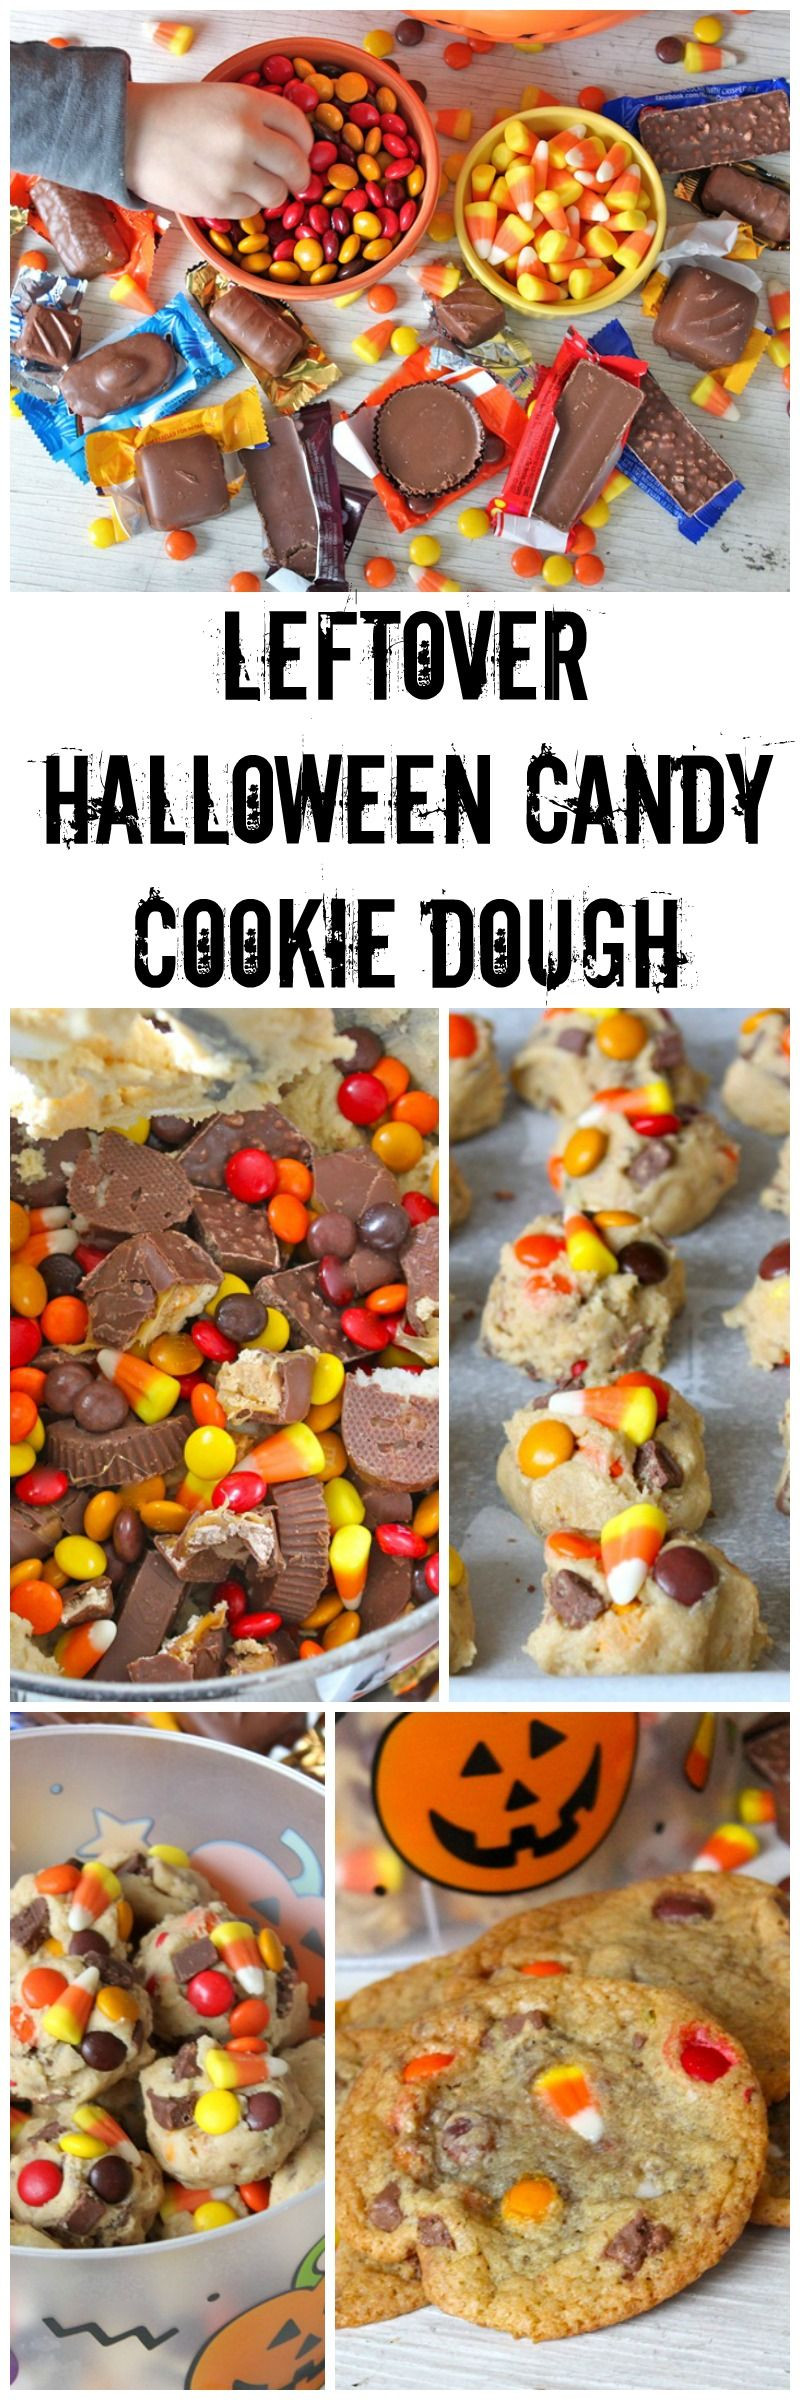 Leftover Halloween Candy Cookies  Leftover Halloween Candy Cookie Dough mix your leftover